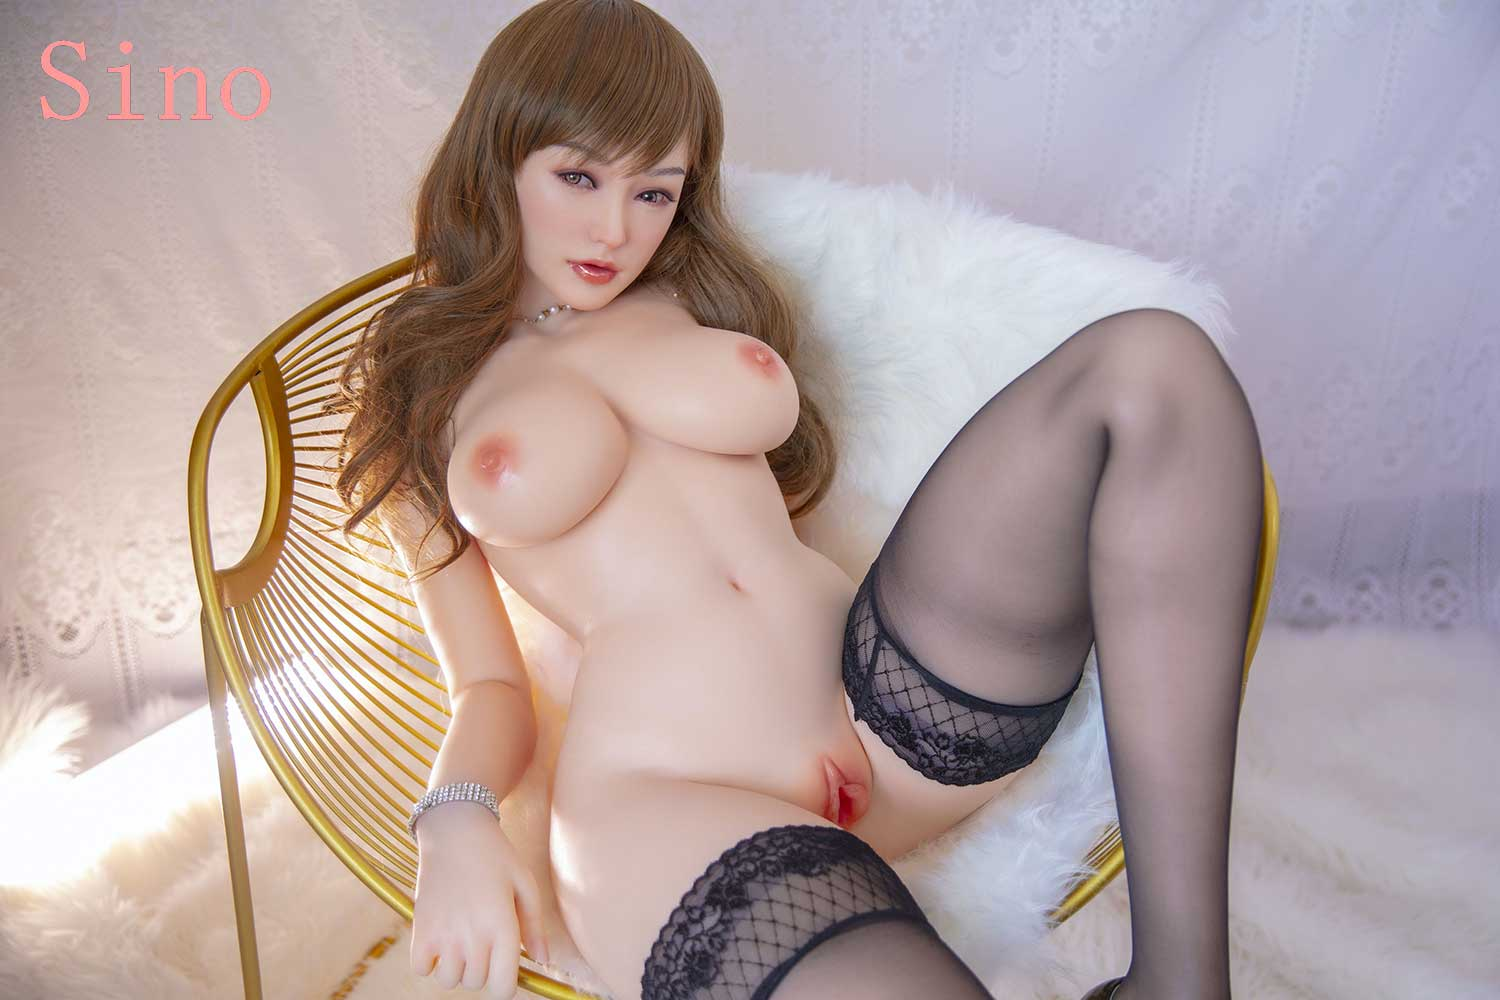 Silicone sex doll sitting on a chair